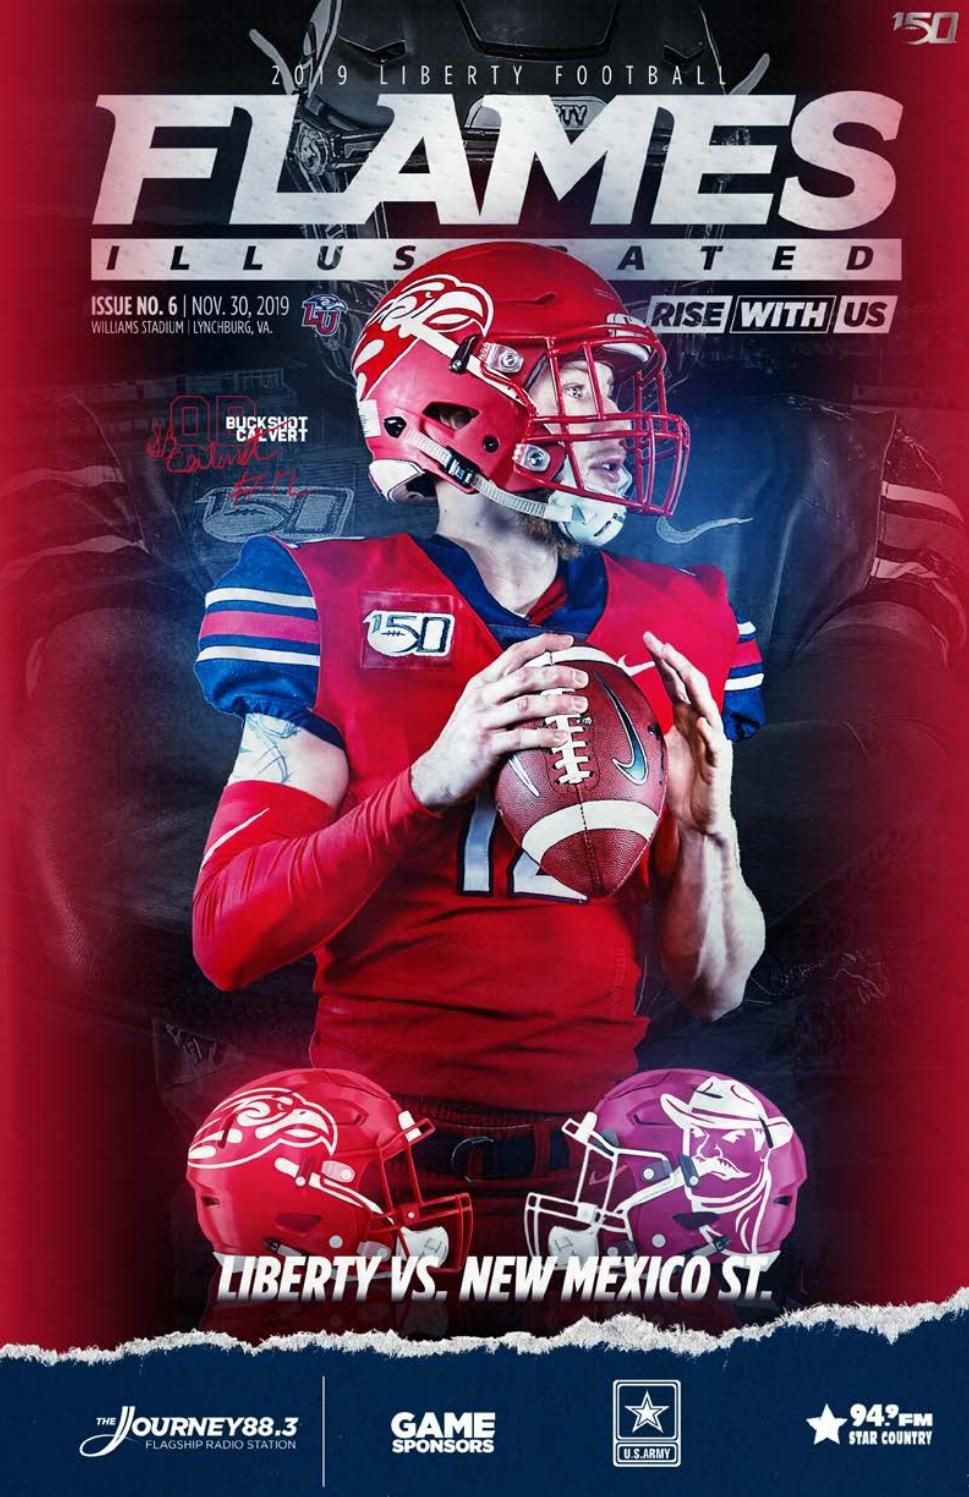 New Mexico State Football Program By Liberty University Issuu In 2020 Football Program Liberty University New Mexico